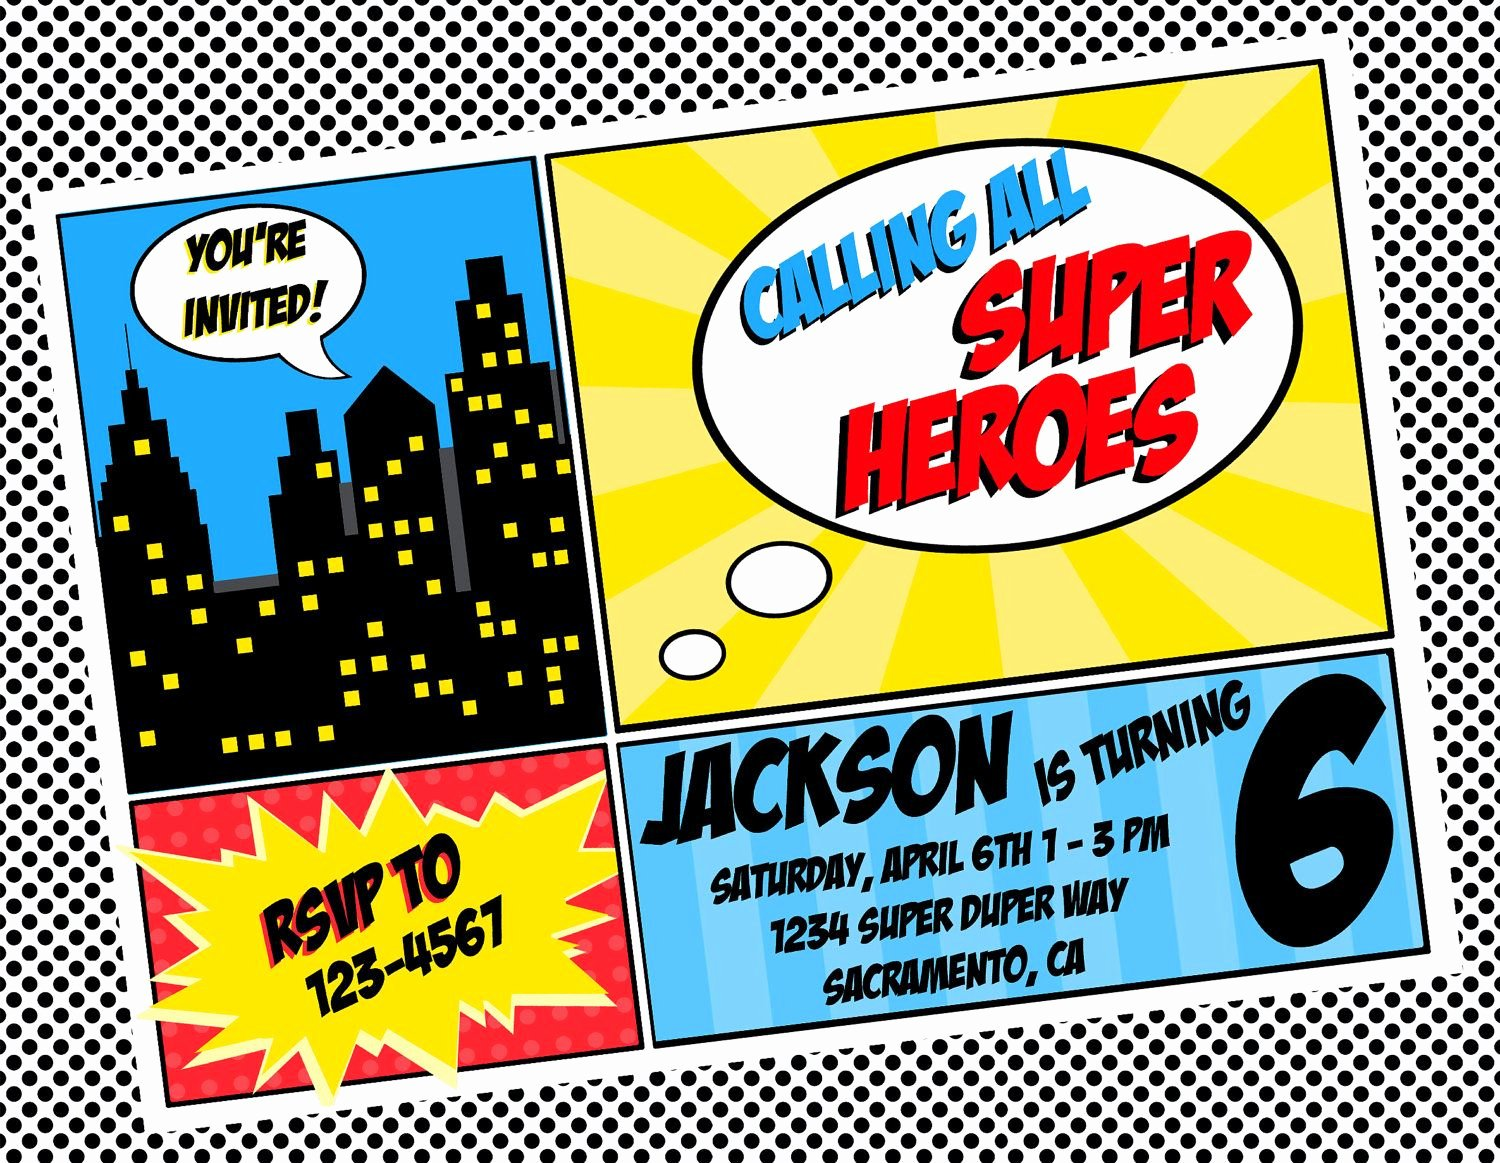 Superhero Birthday Invitations Templates Free Lovely Free Superhero Invitation Templates Invitation Templates Supertucker Turns 4